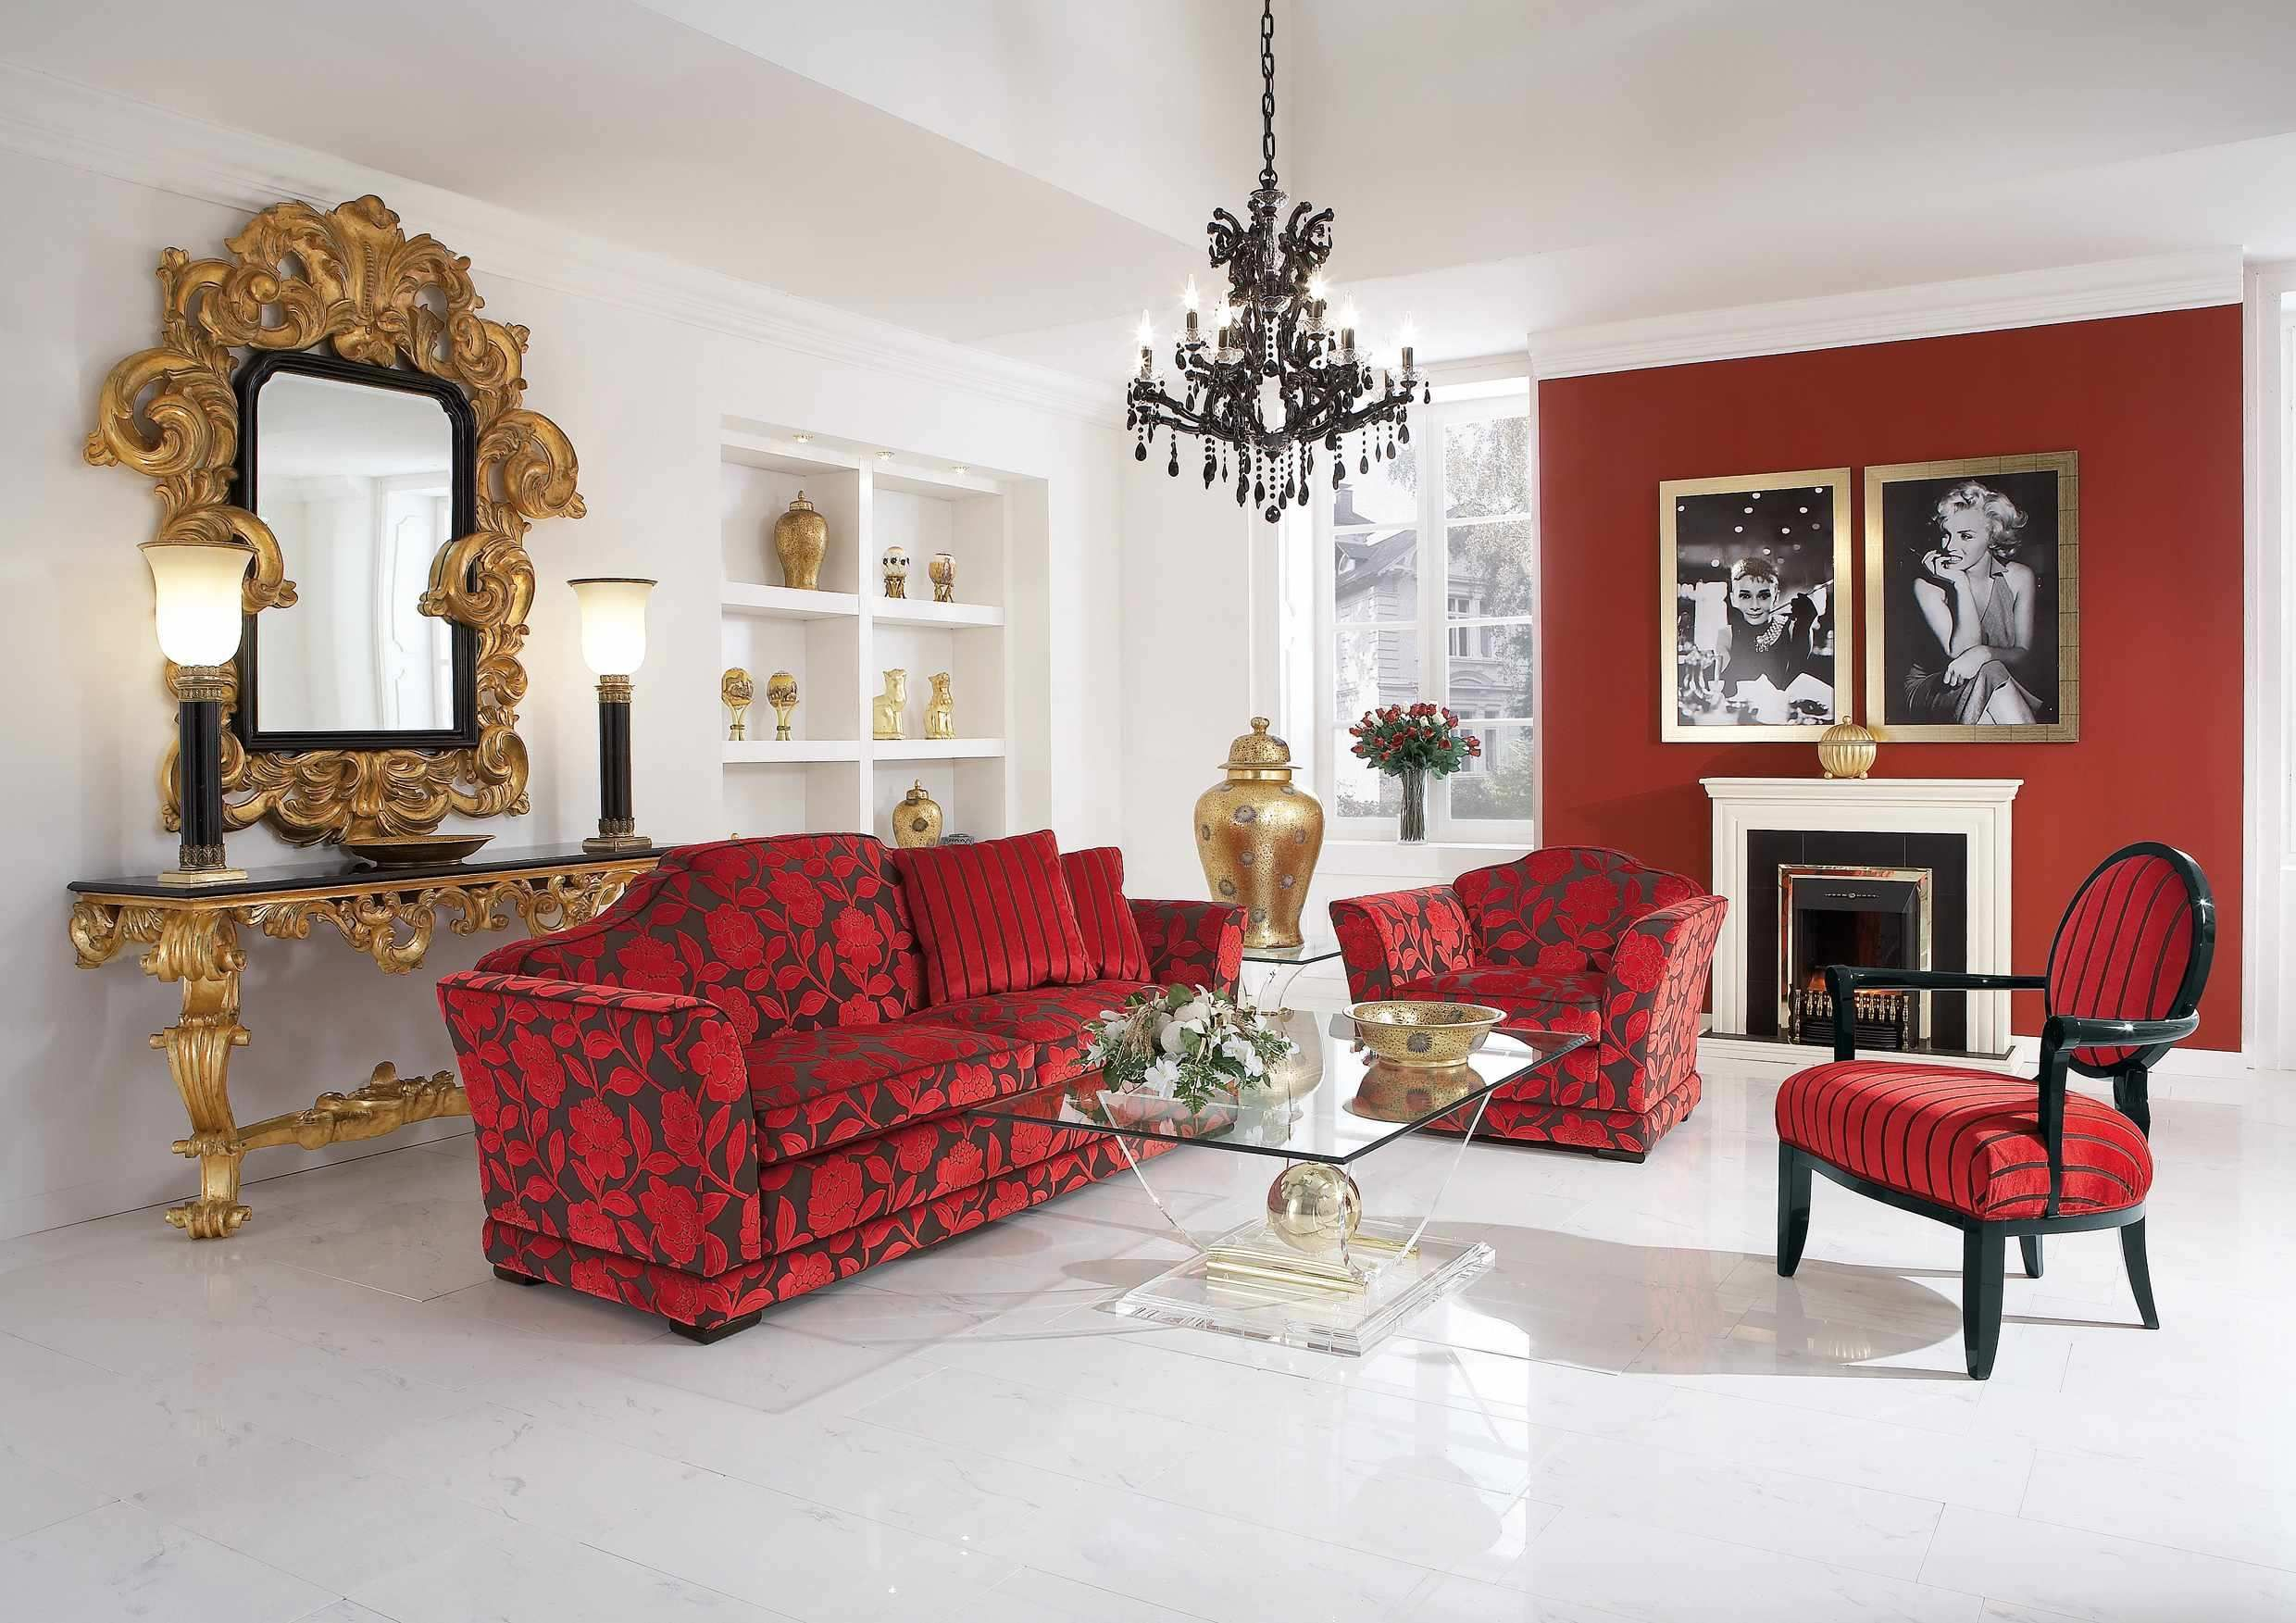 gorgeous inspiration black and red living room set. Outstanding Luxury Red Living Room Decorating Design Color Ideas Combined  With White Black And Gold Google Image Result for http www asyoulike ca wp content uploads